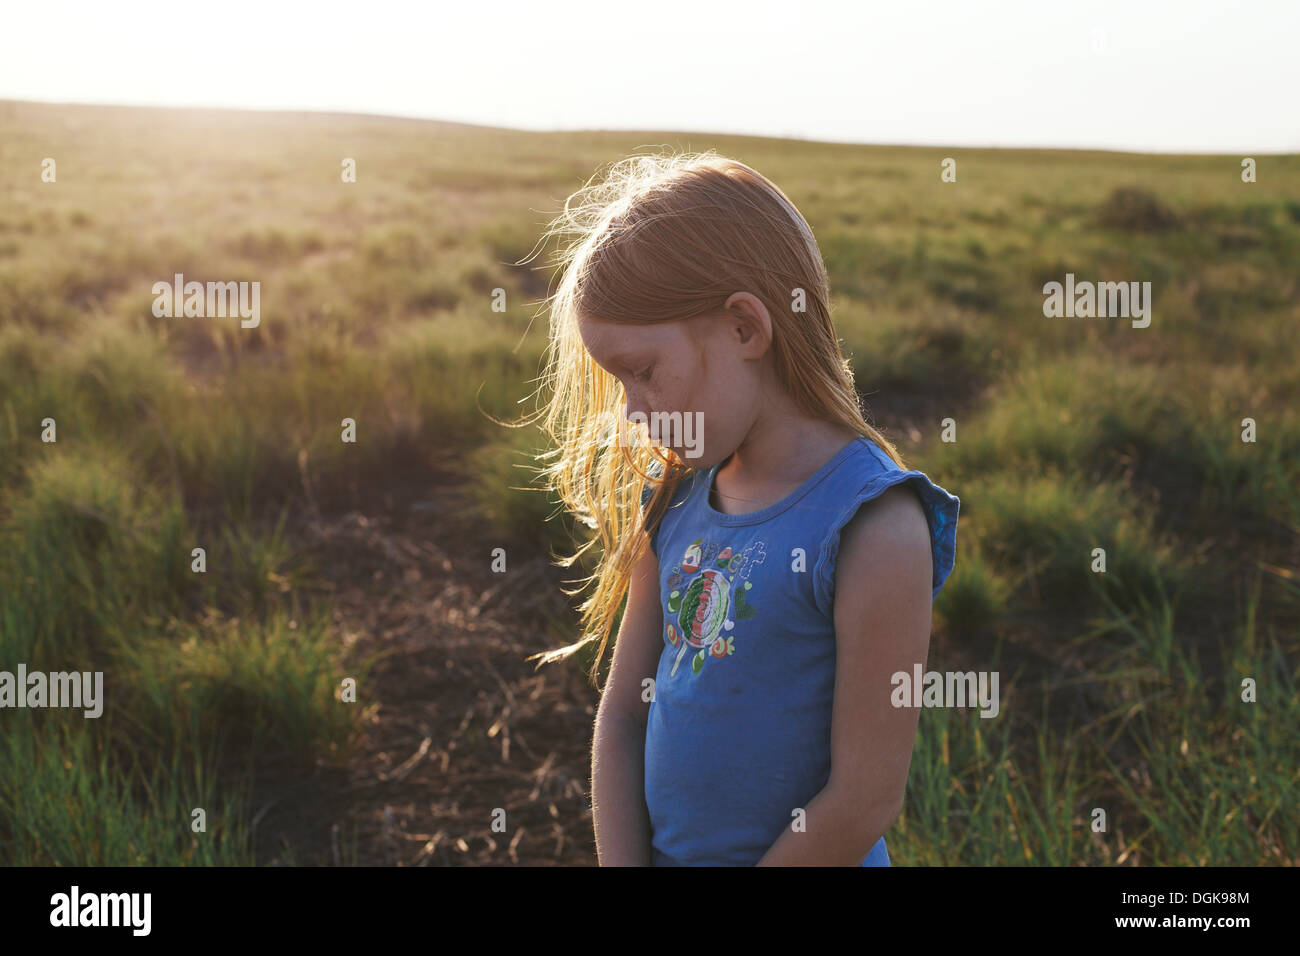 Girl looking down in sadness - Stock Image